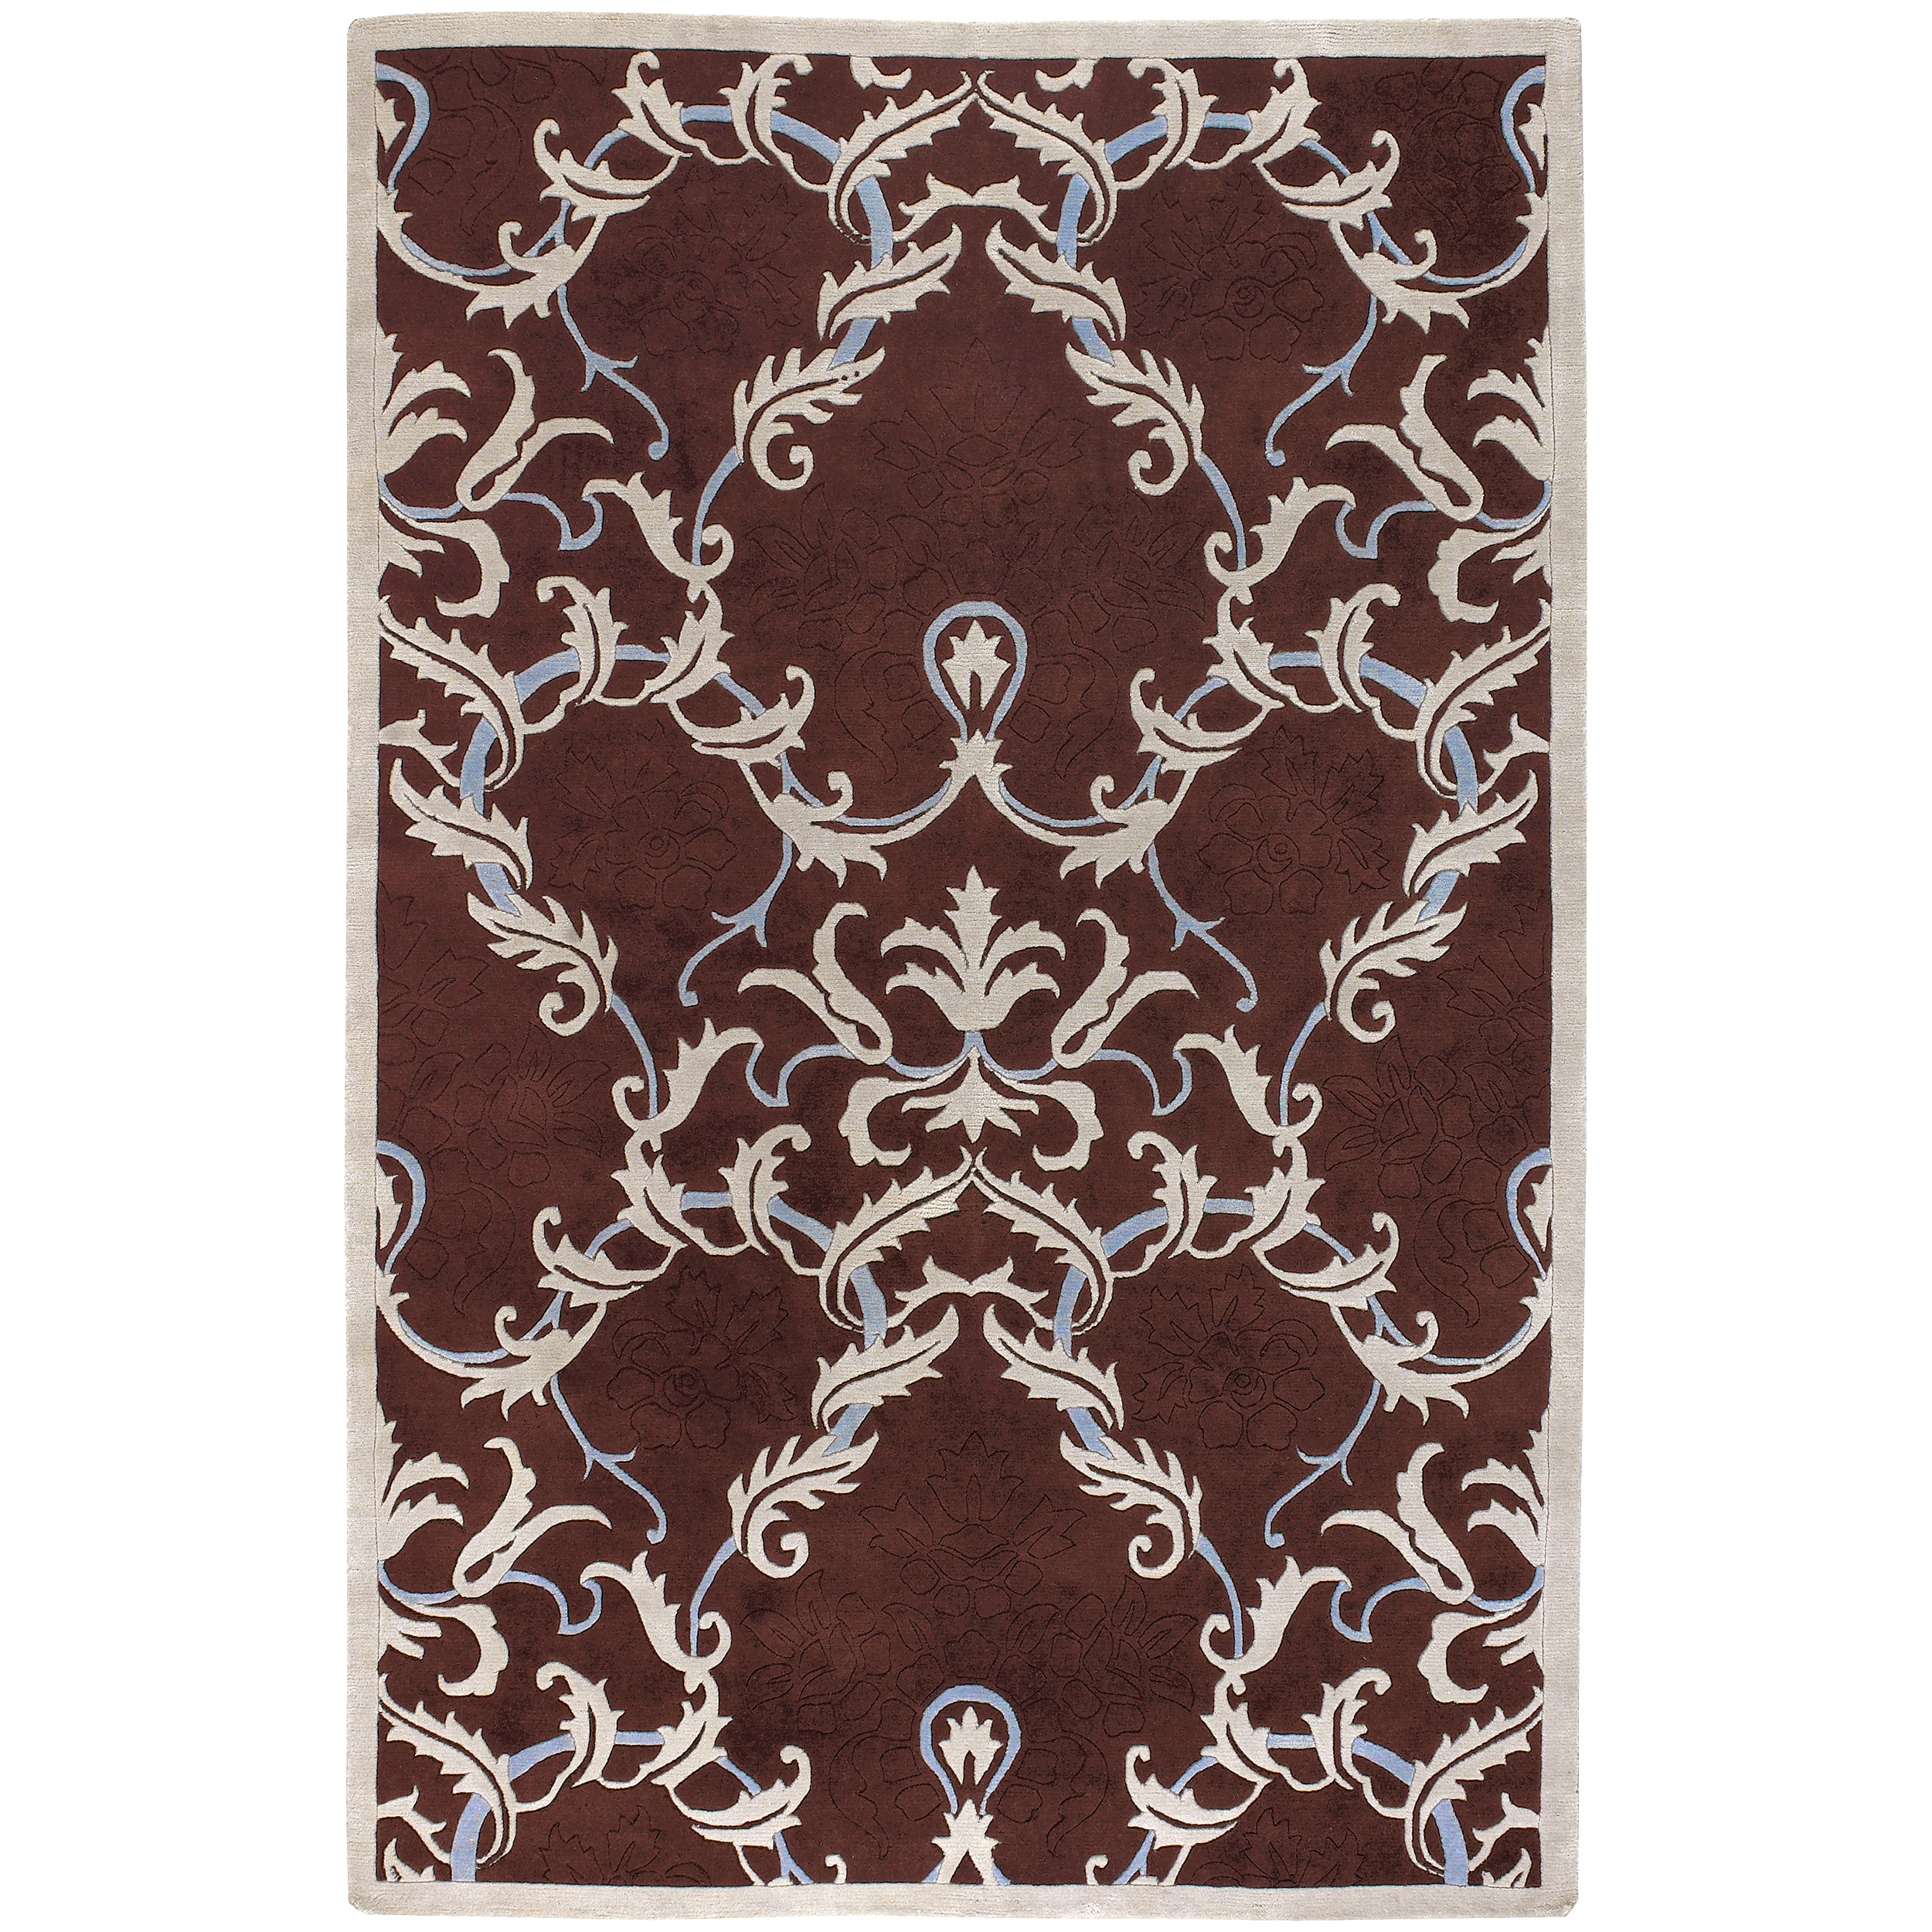 Hand-knotted Multicolored La Crosse Damask Print Wool Rug (5' x 8')